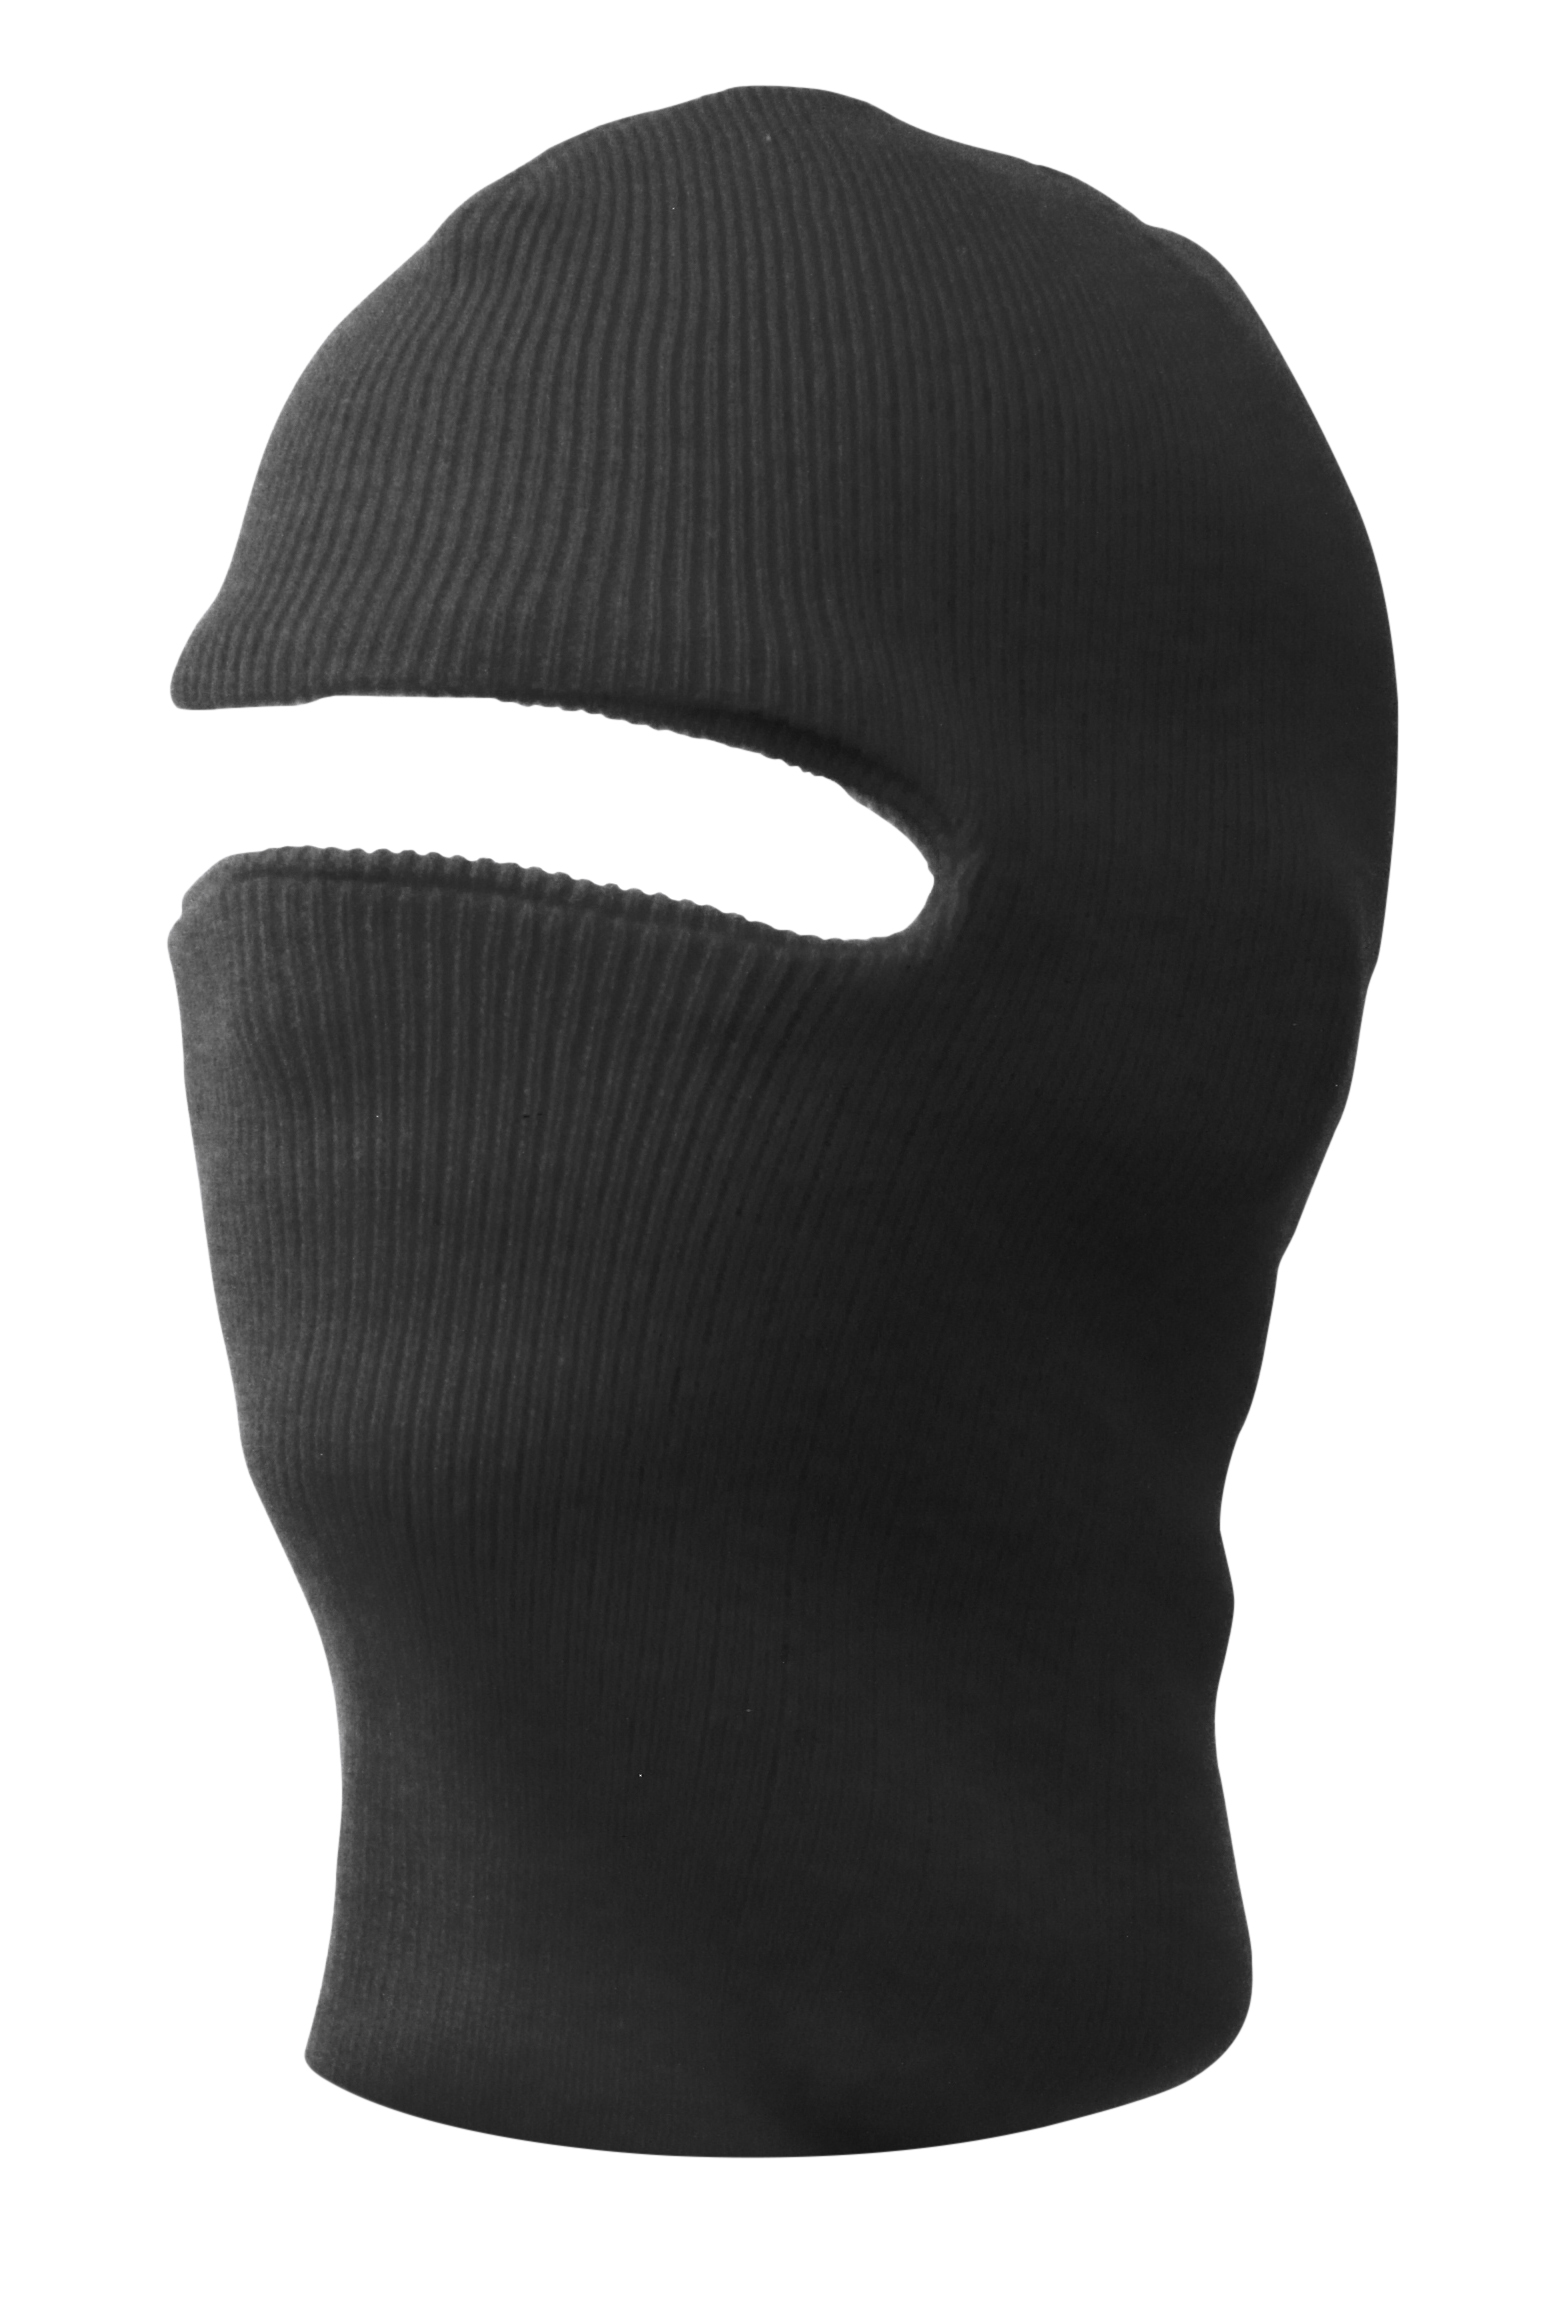 New Charcoal One Hole Ski Mask by